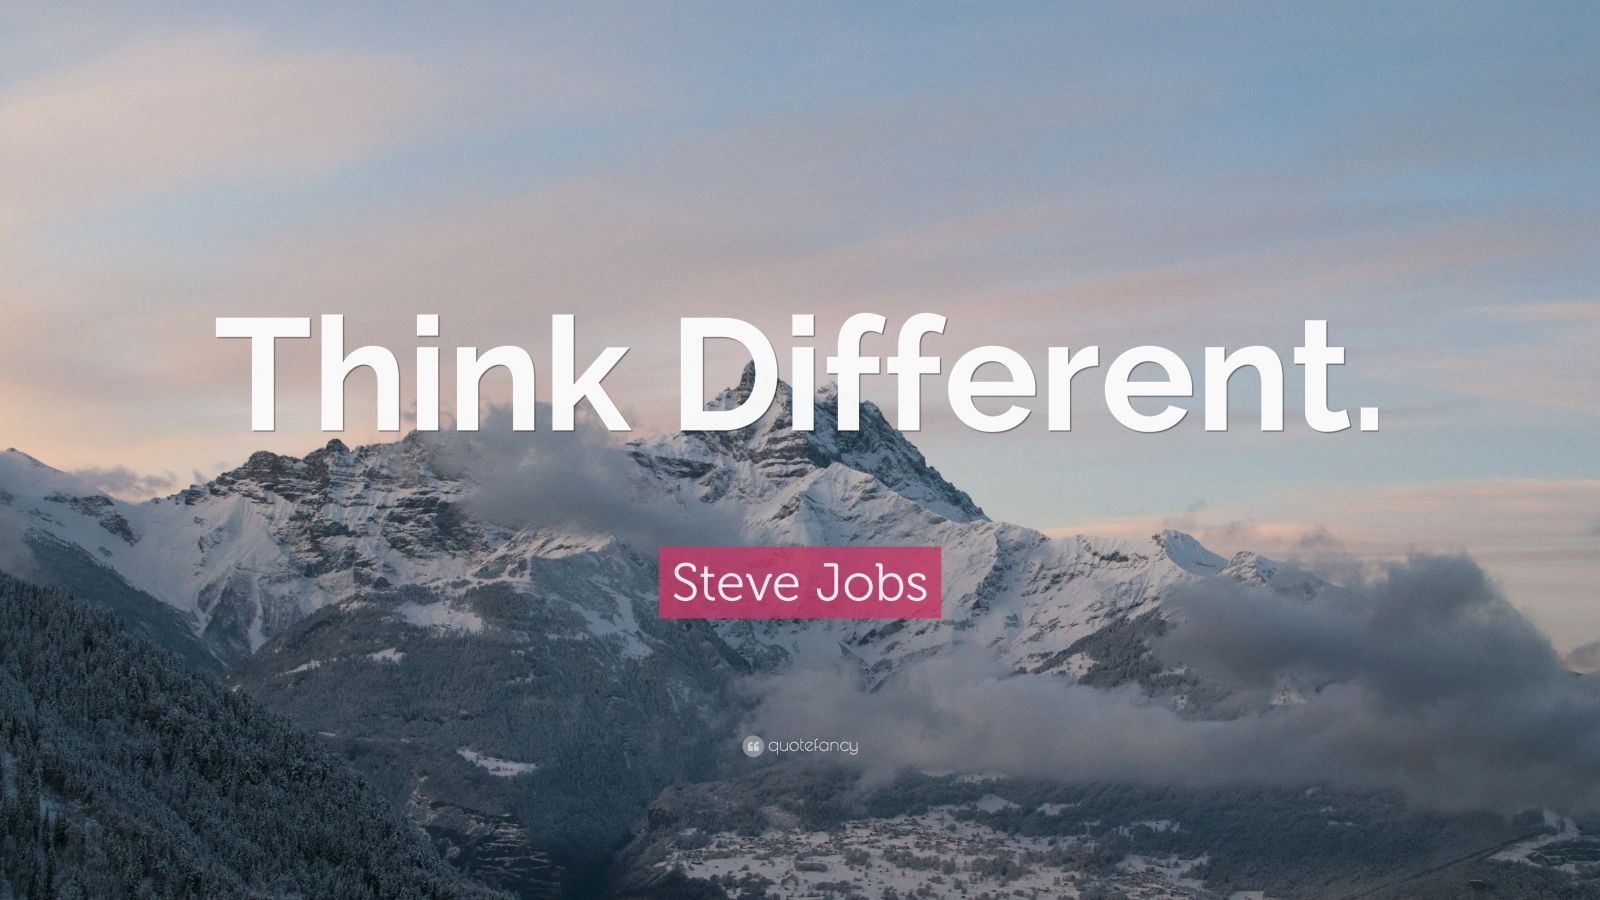 Beautiful Life Wallpapers With Quotes Steve Jobs Quote Think Different 21 Wallpapers